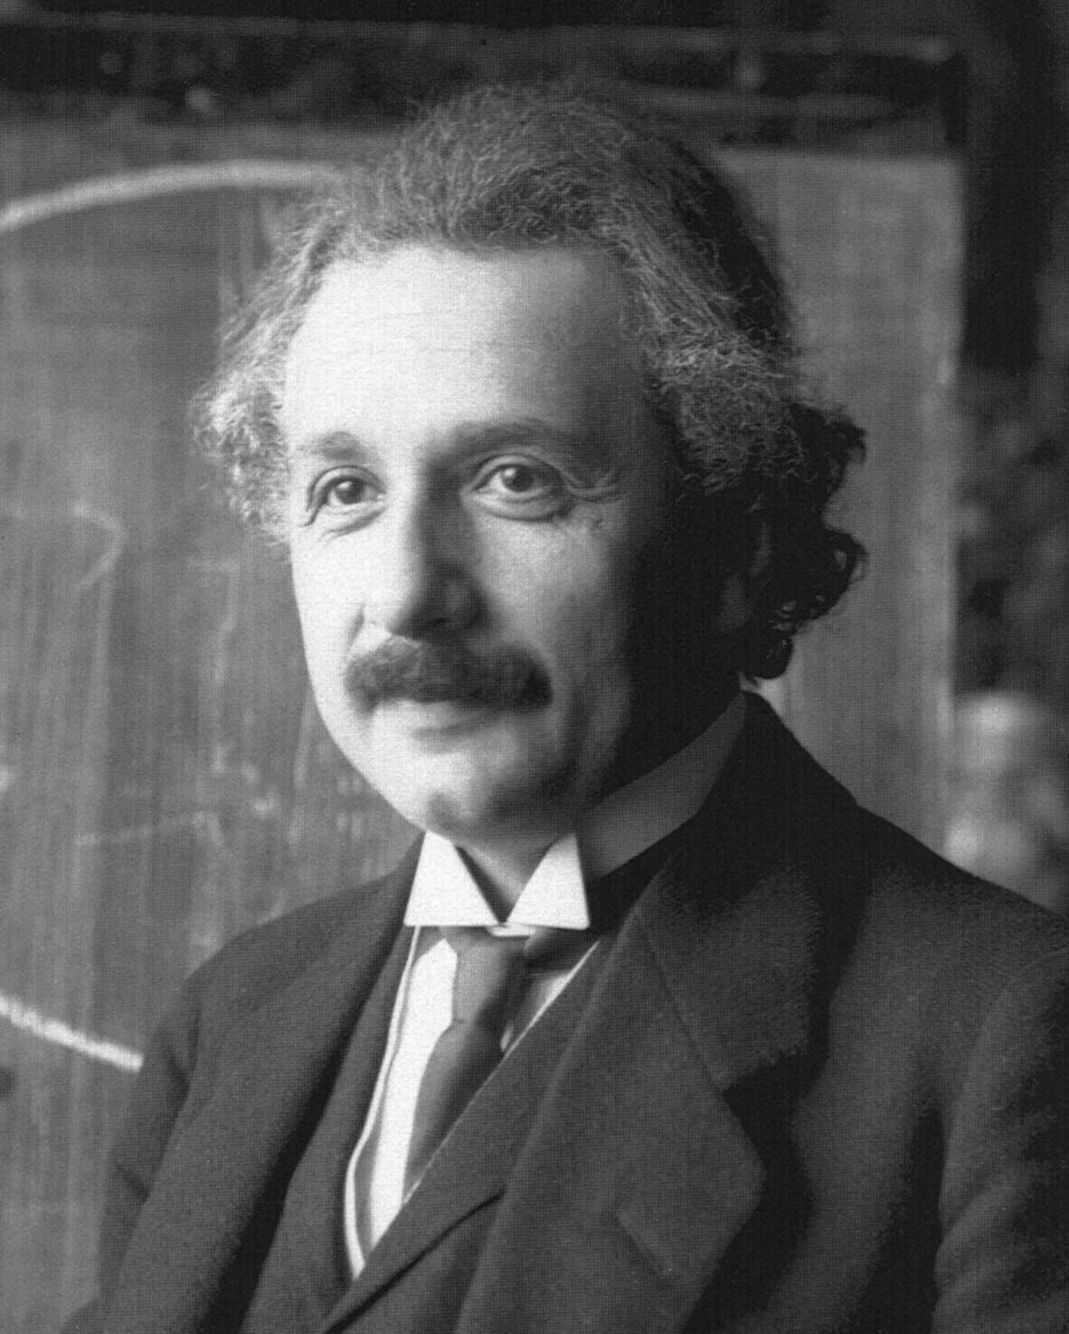 Albert Einstein in 1921 Born 14 March 1879 Ulm, Kingdom of Württemberg, German Empire Died 18 April 1955 (aged 76) Princeton, New Jersey, United States